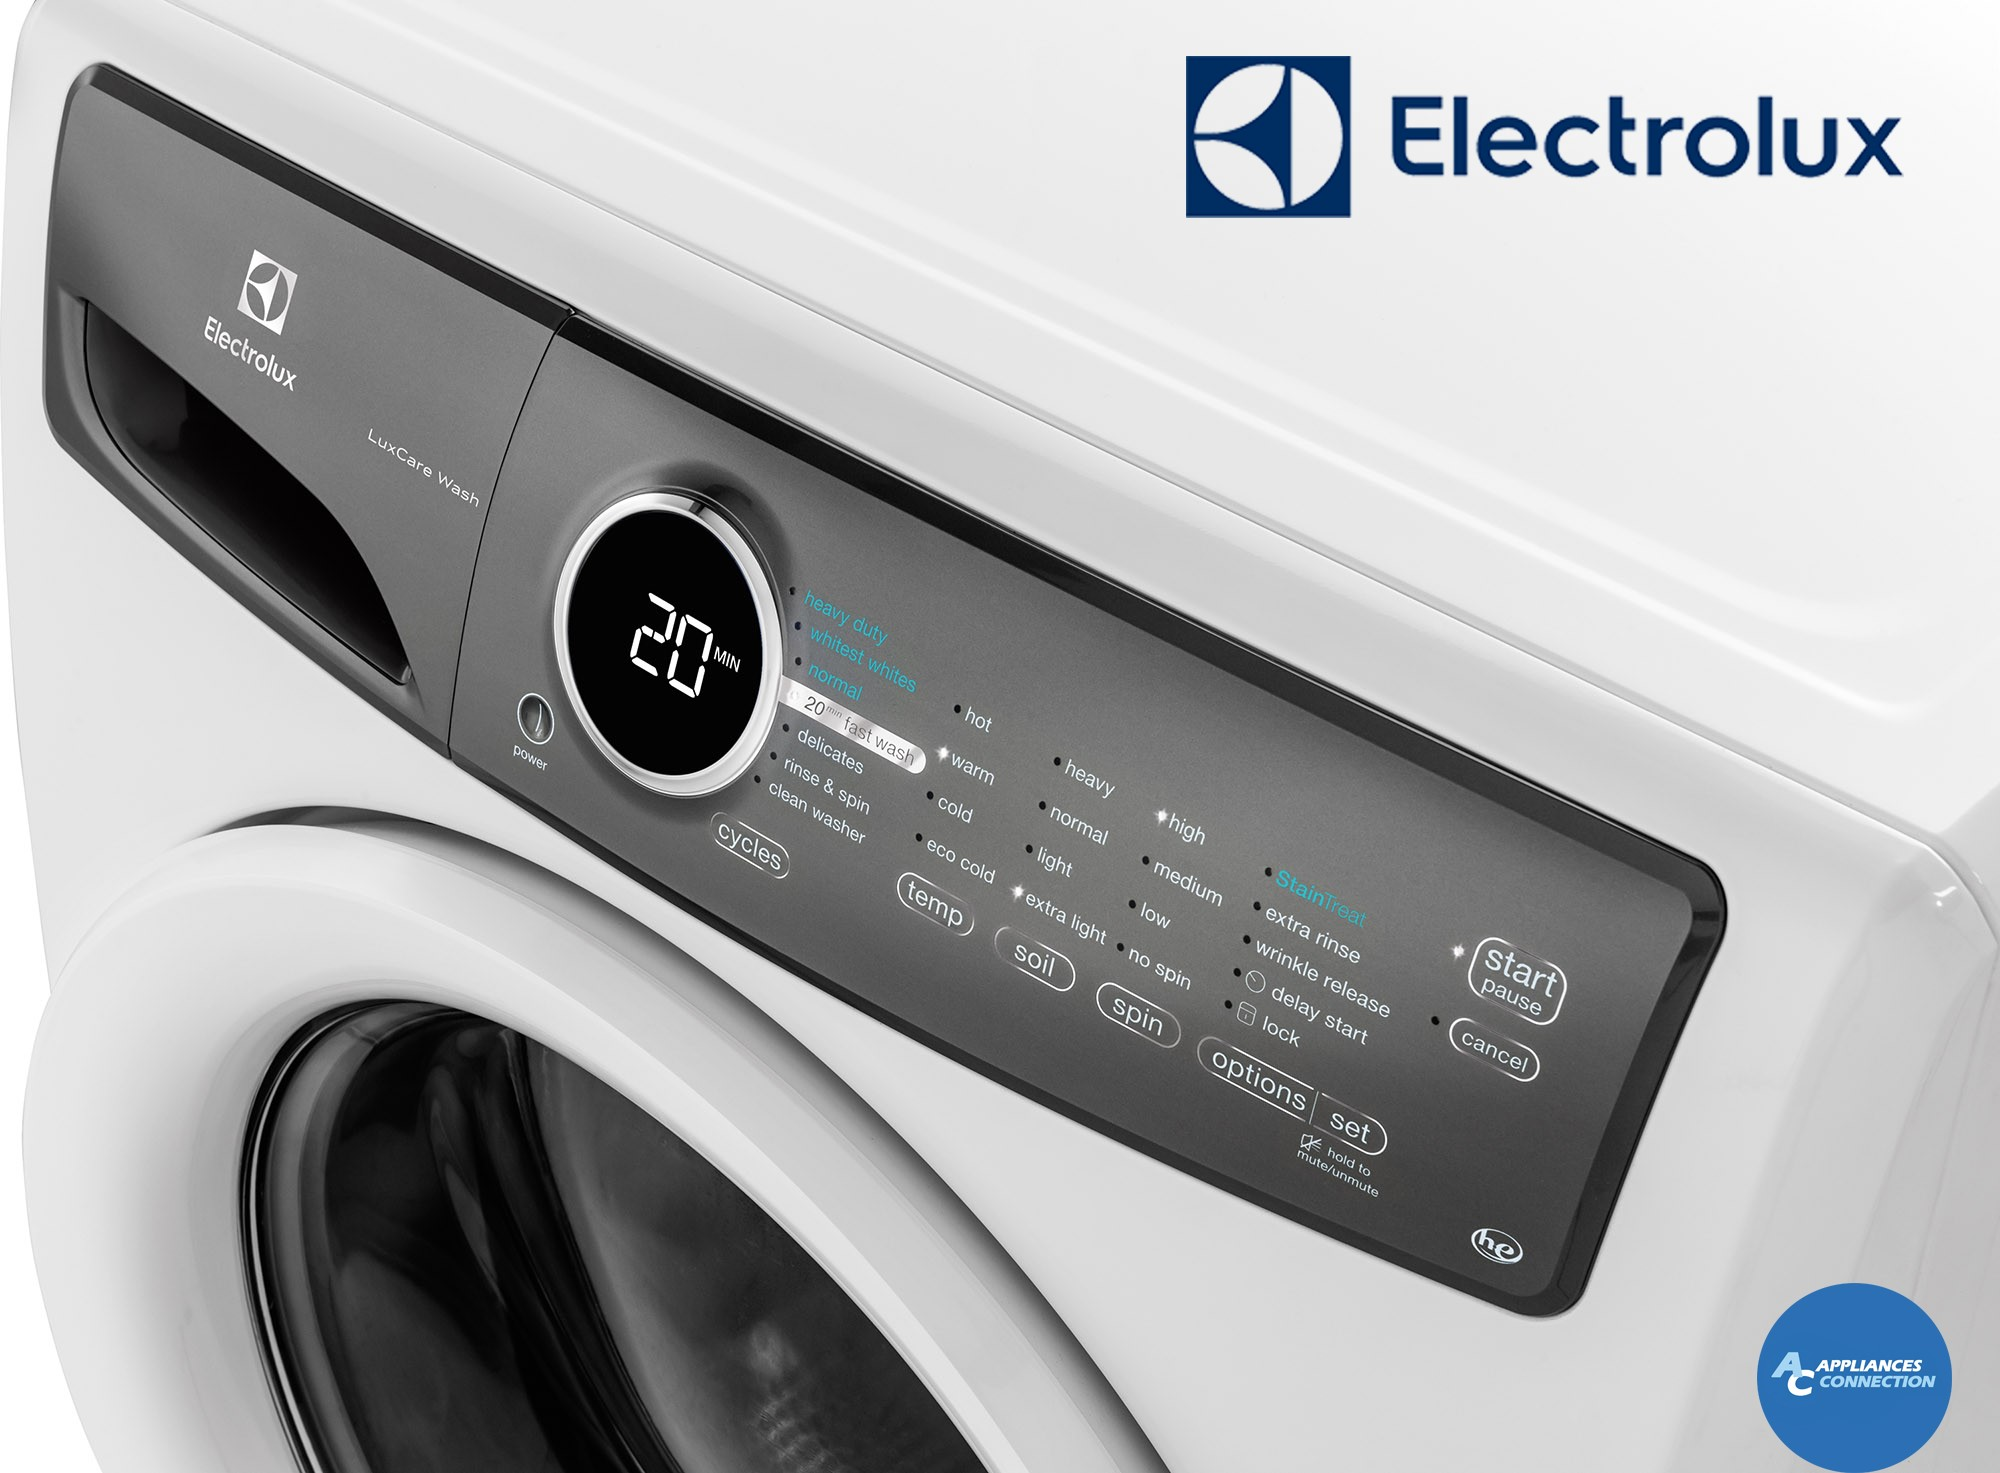 electrolux 617 washer and dryer. info \u0026 guides electrolux 617 washer and dryer